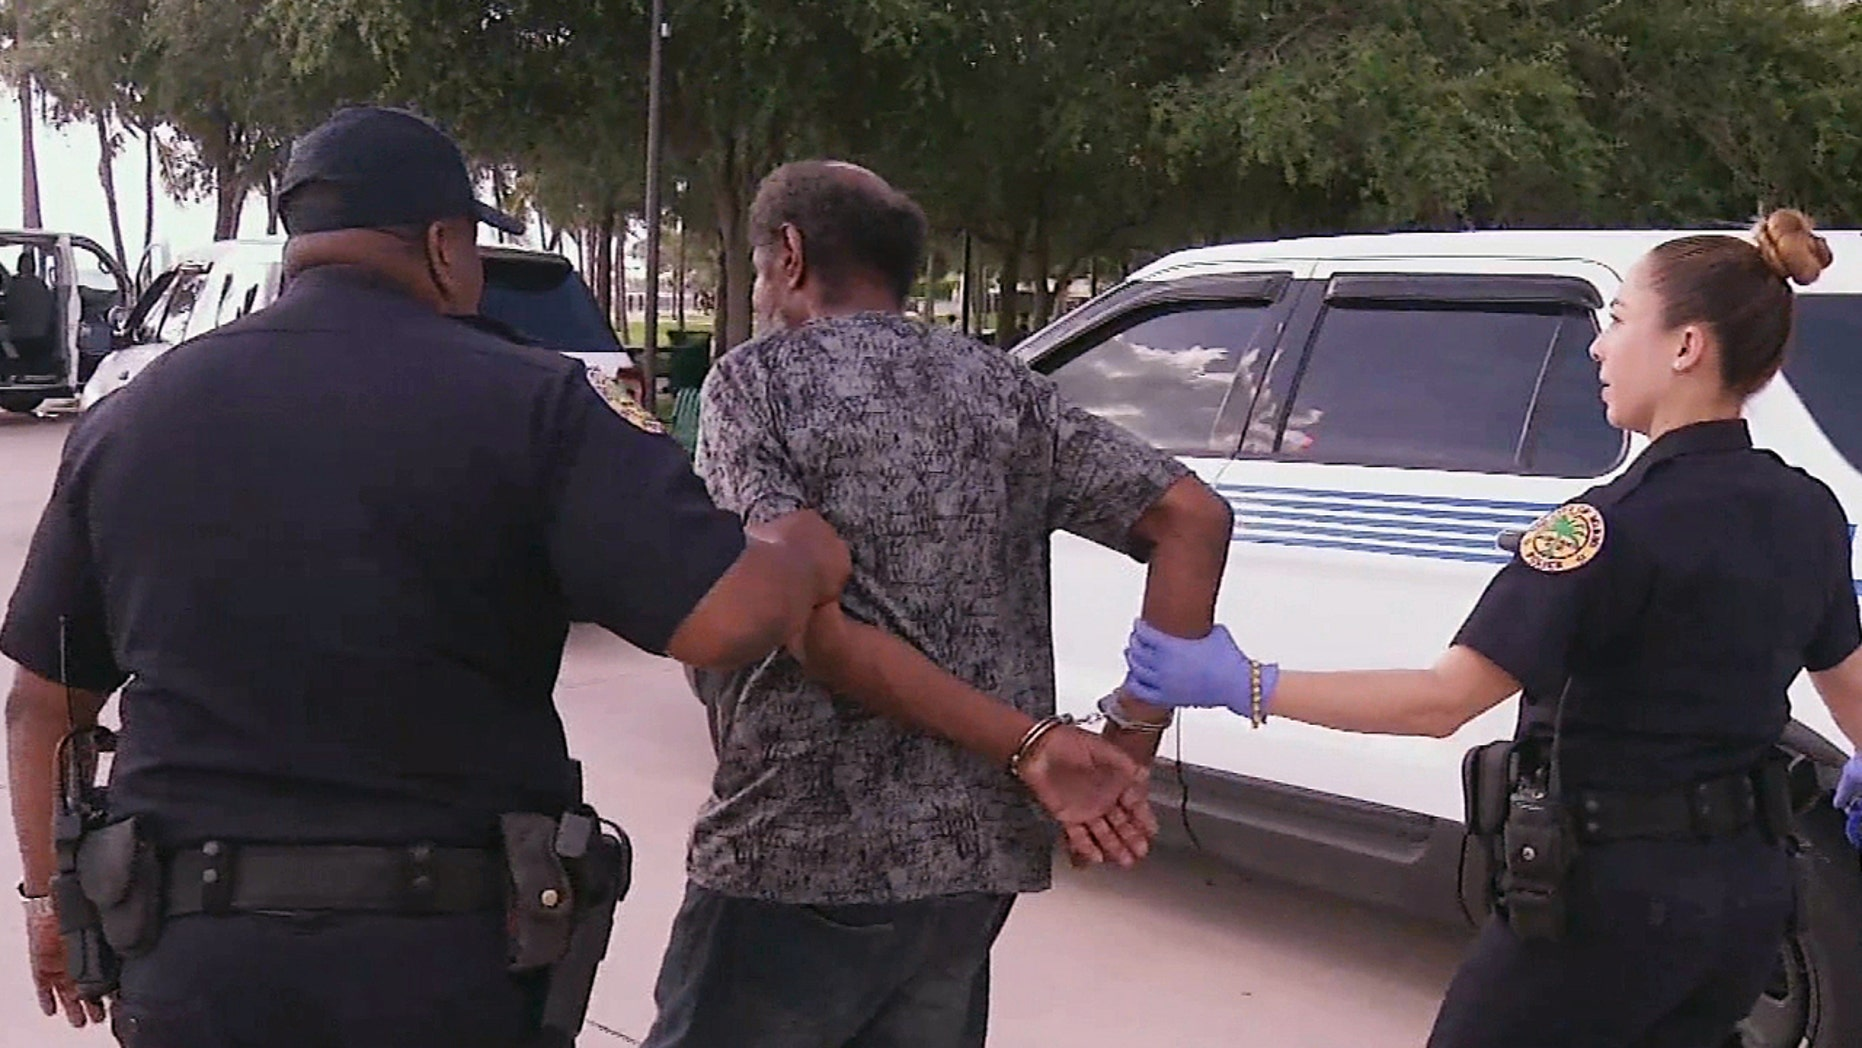 In this video clip from Sept. 8, 2017, officials in Miami detain a person who is homeless ahead of powerful Hurricane Irma.